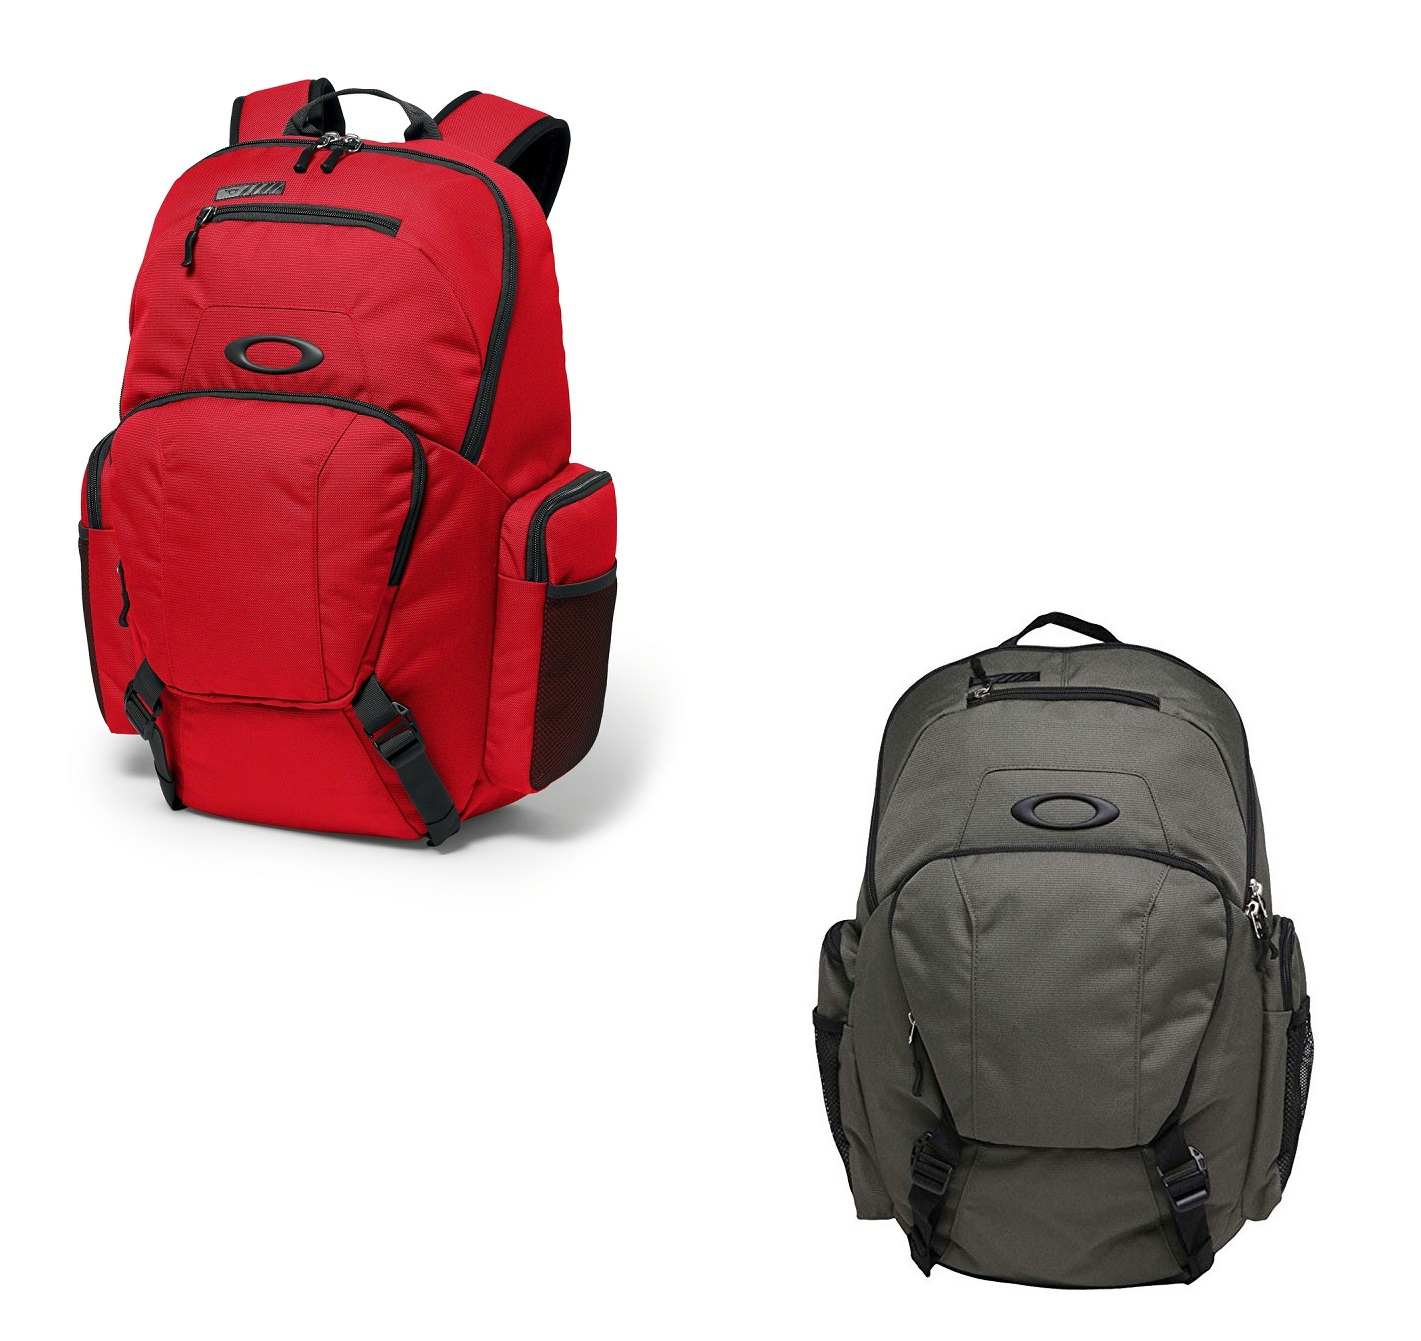 88a7fde06 Image is loading Oakley-Blade-30-Backpack-Mens-2019-Multiple-Colors